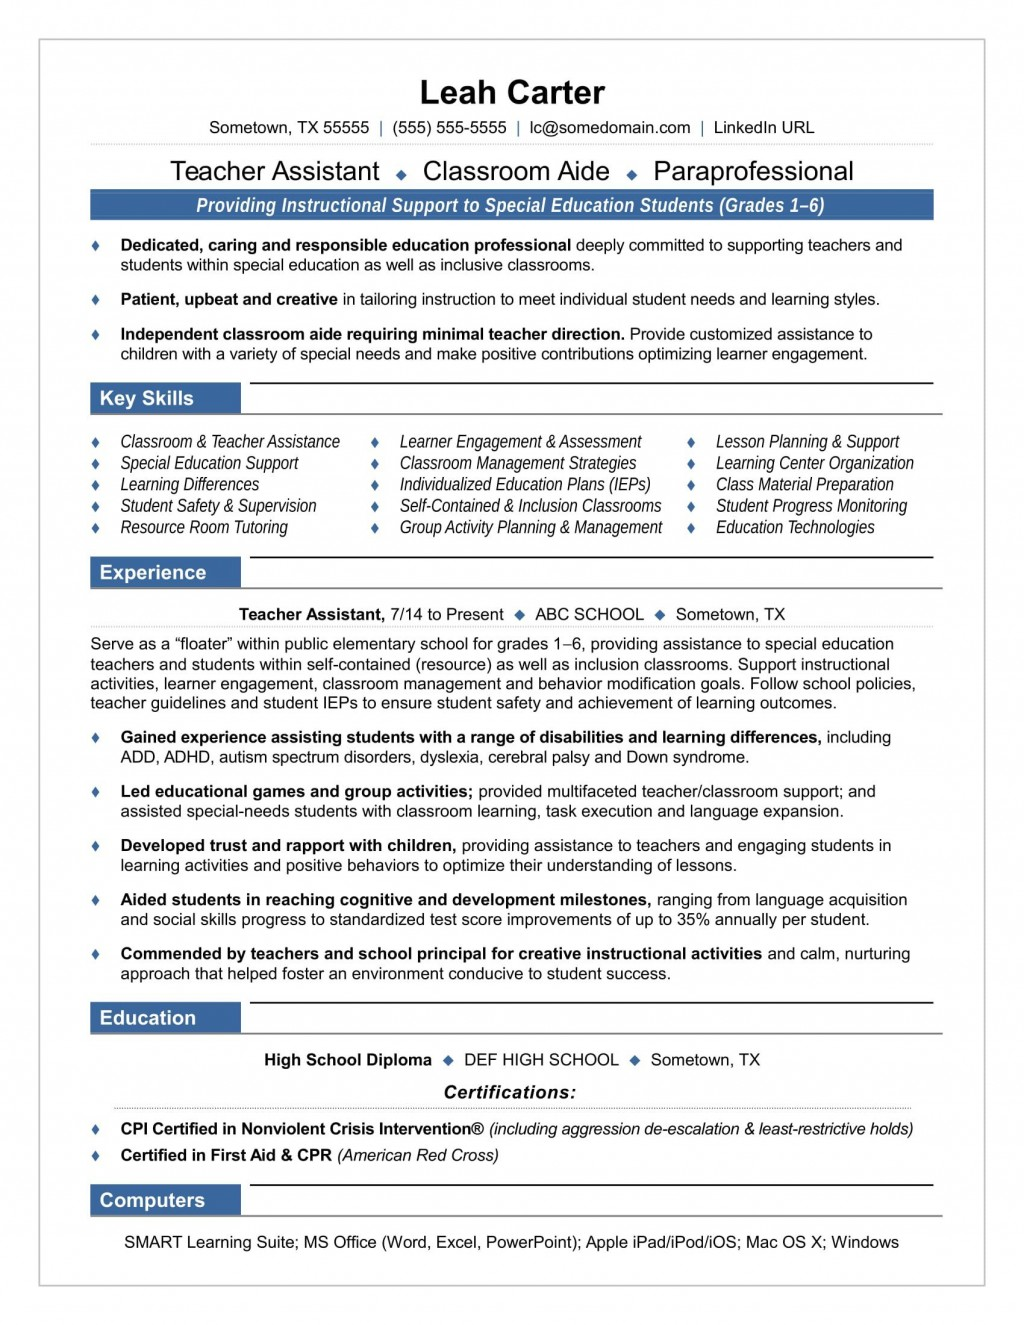 008 Frightening Resume Sample For Teaching Position Image  Teacher Aide In CollegeLarge